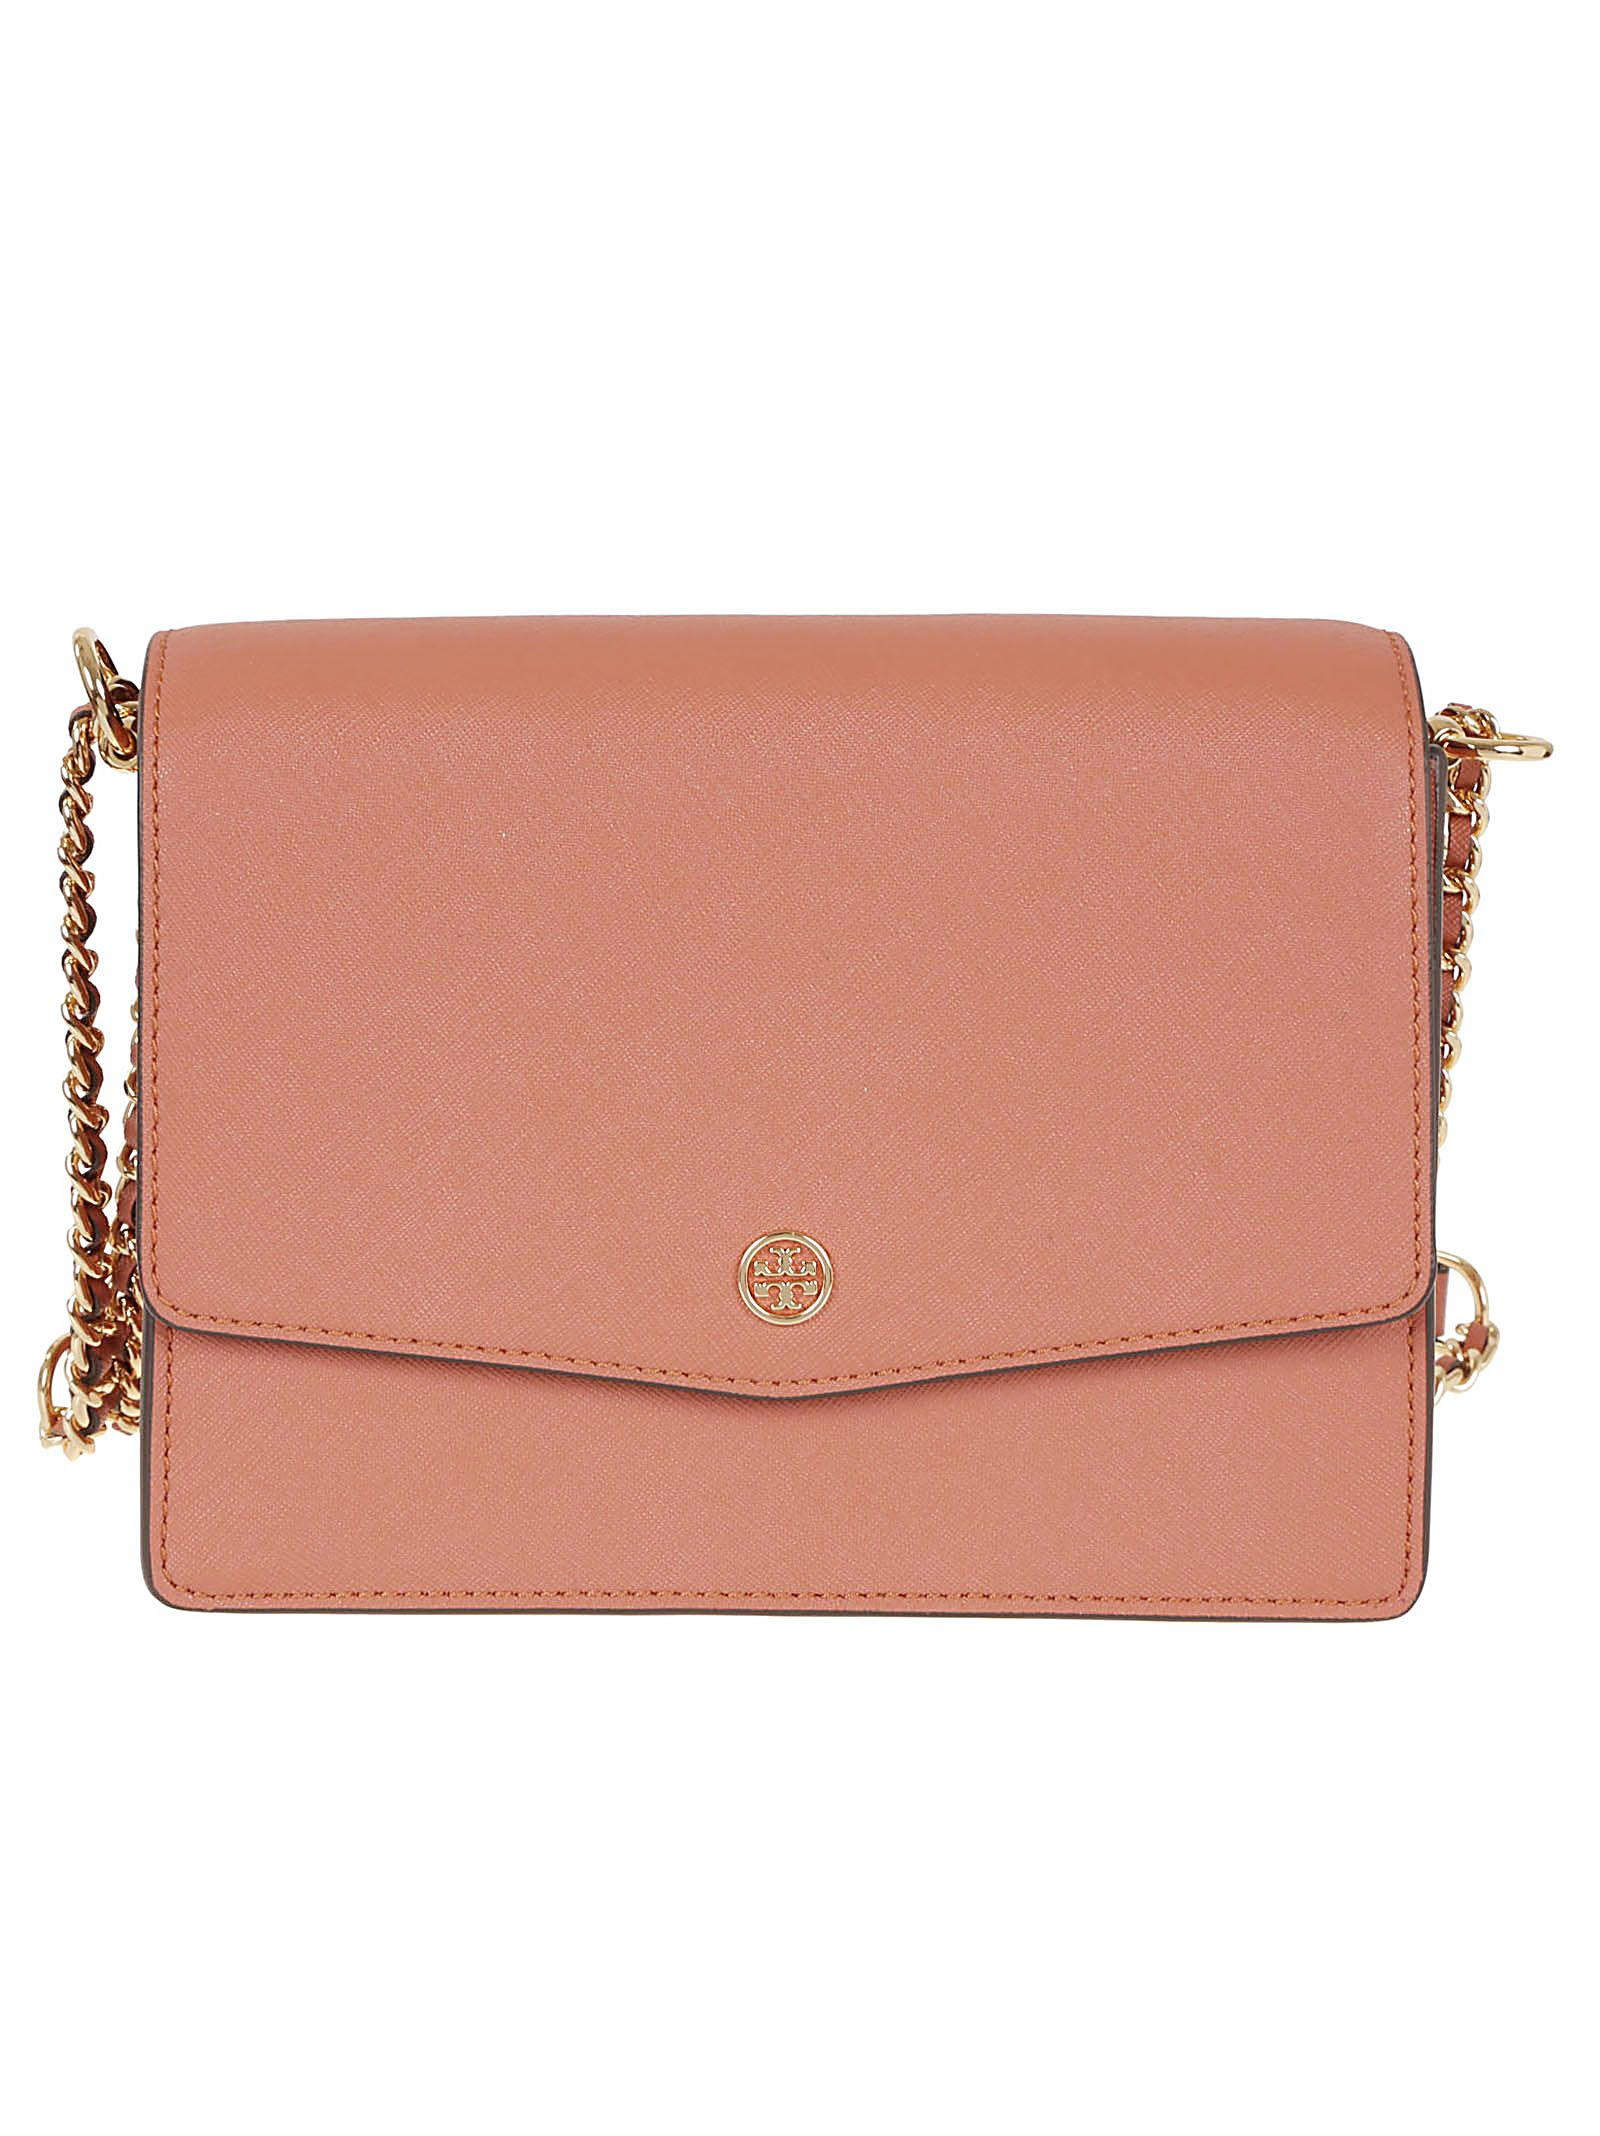 d14c911b377 Tory Burch Tory Burch Robinson Convertible Shoulder Bag - Tramonto ...